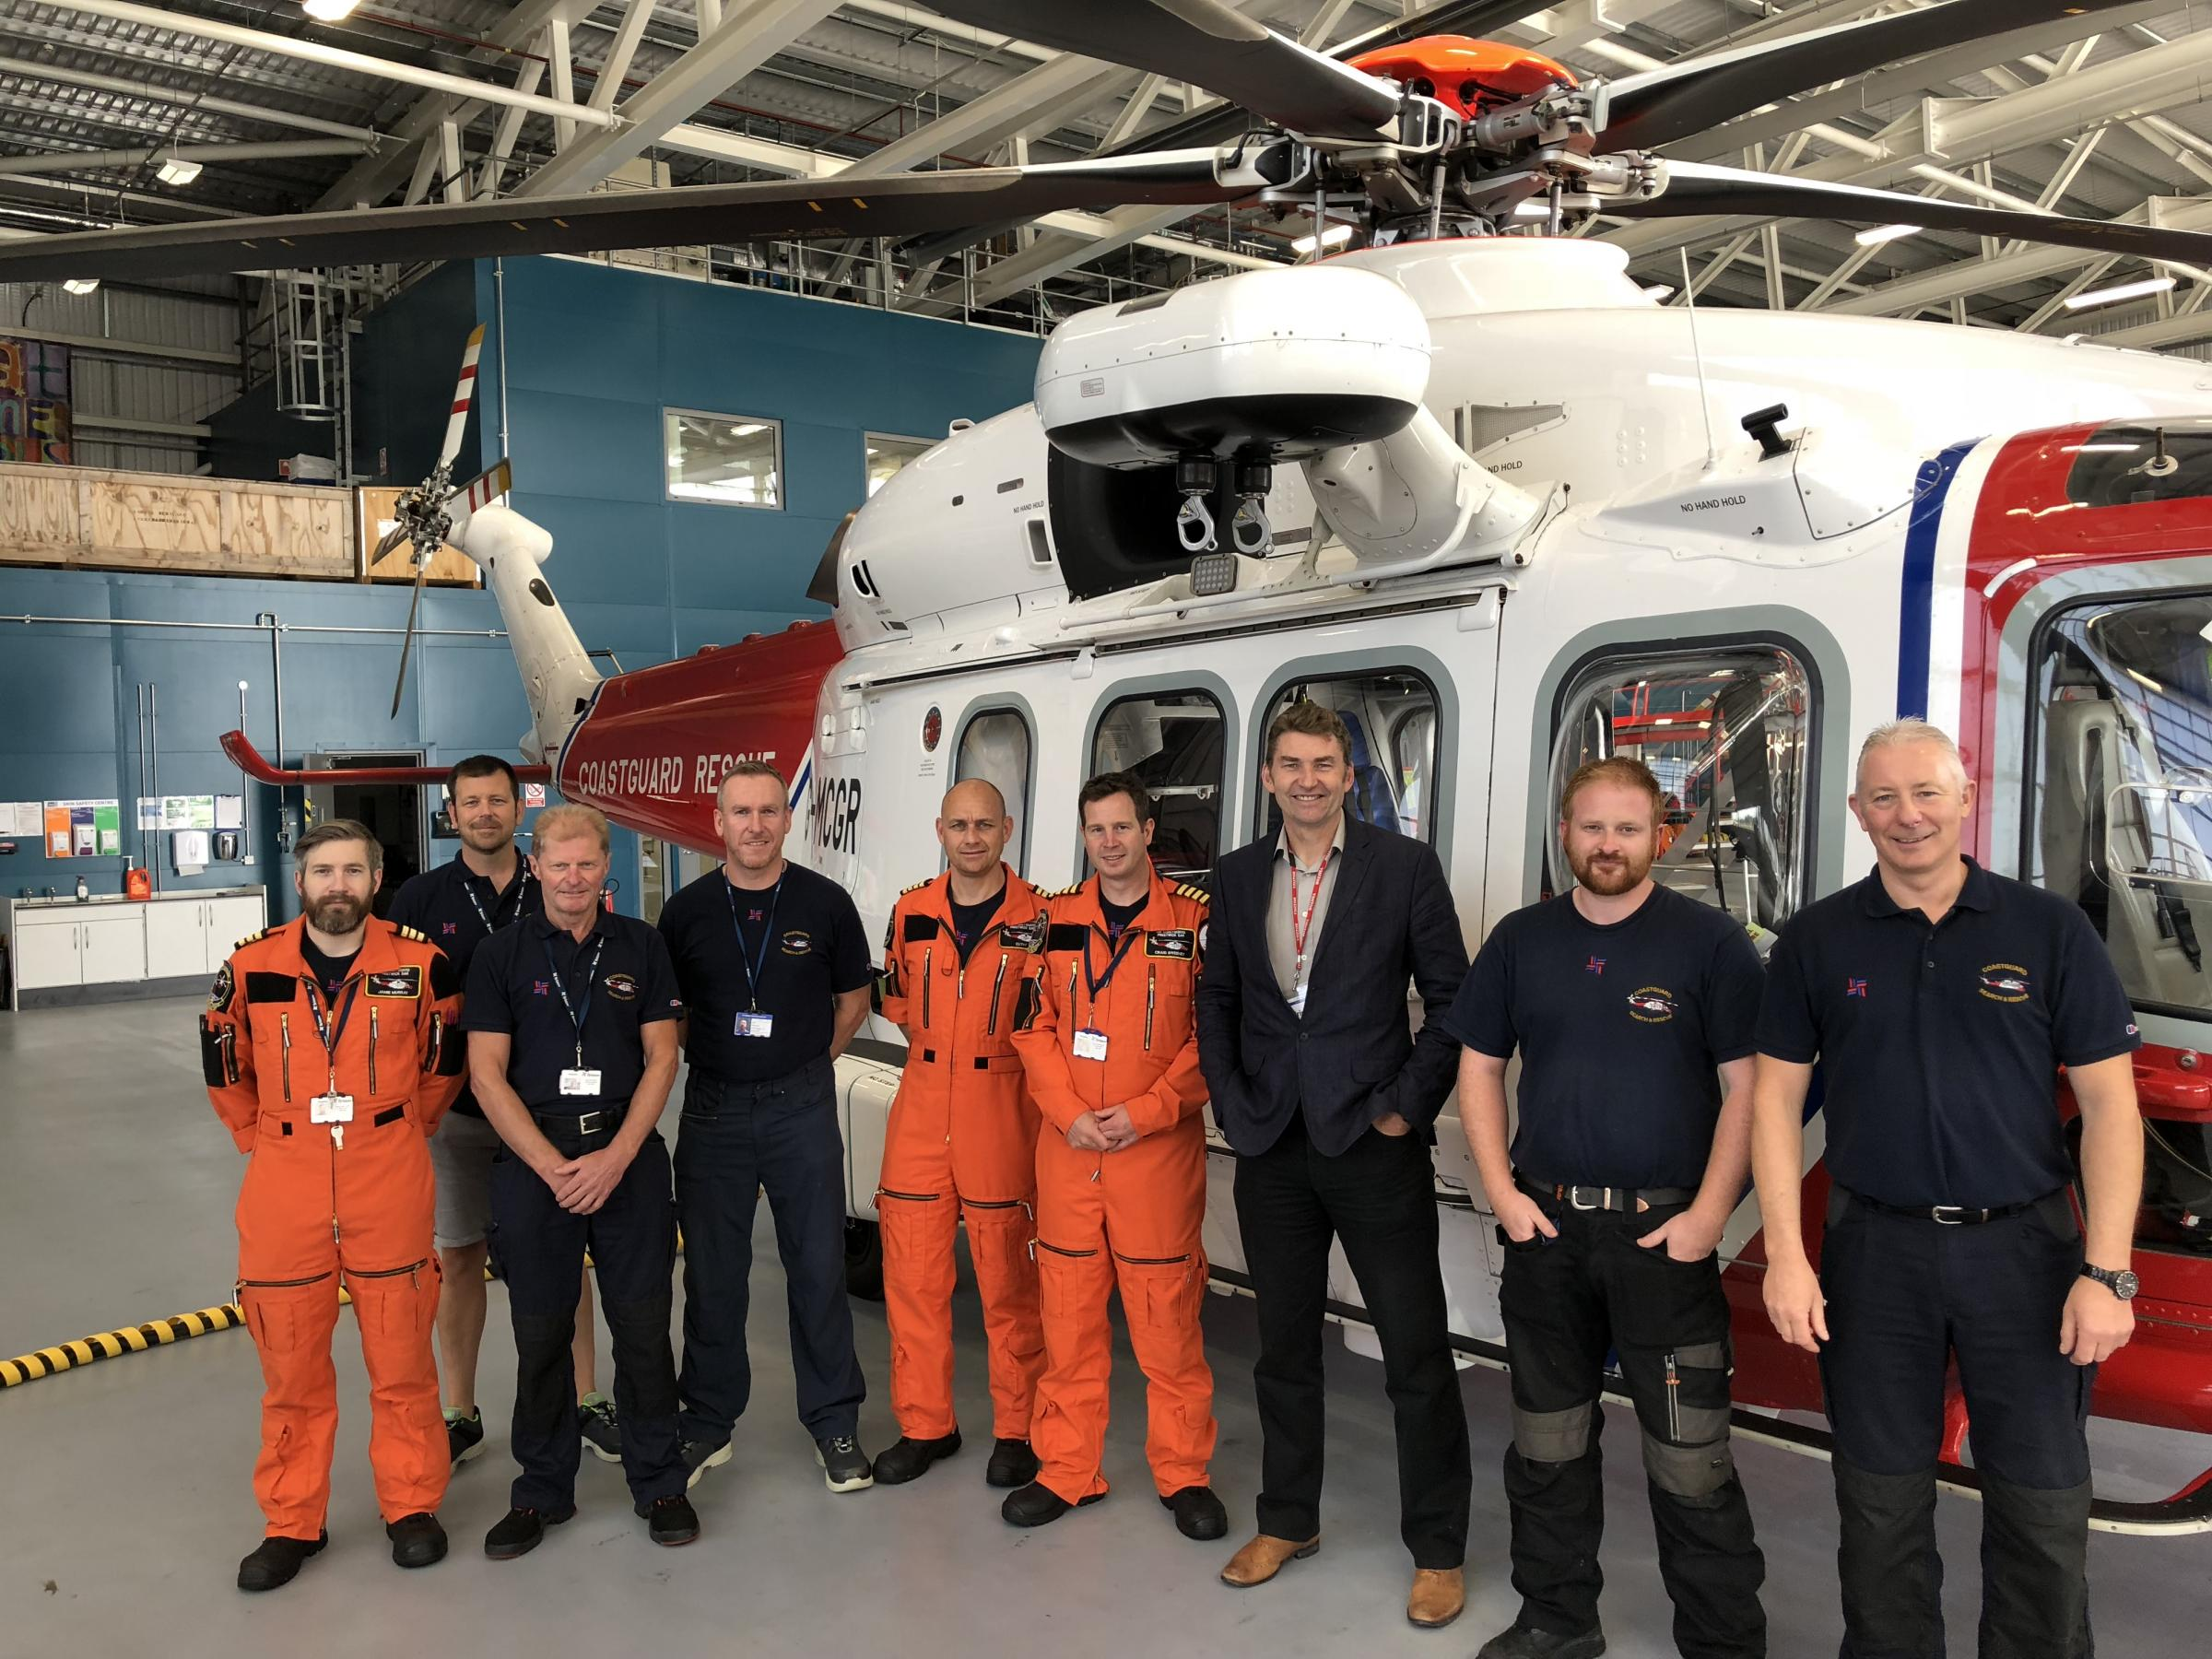 TOUR: MSP praises Search and Rescue team